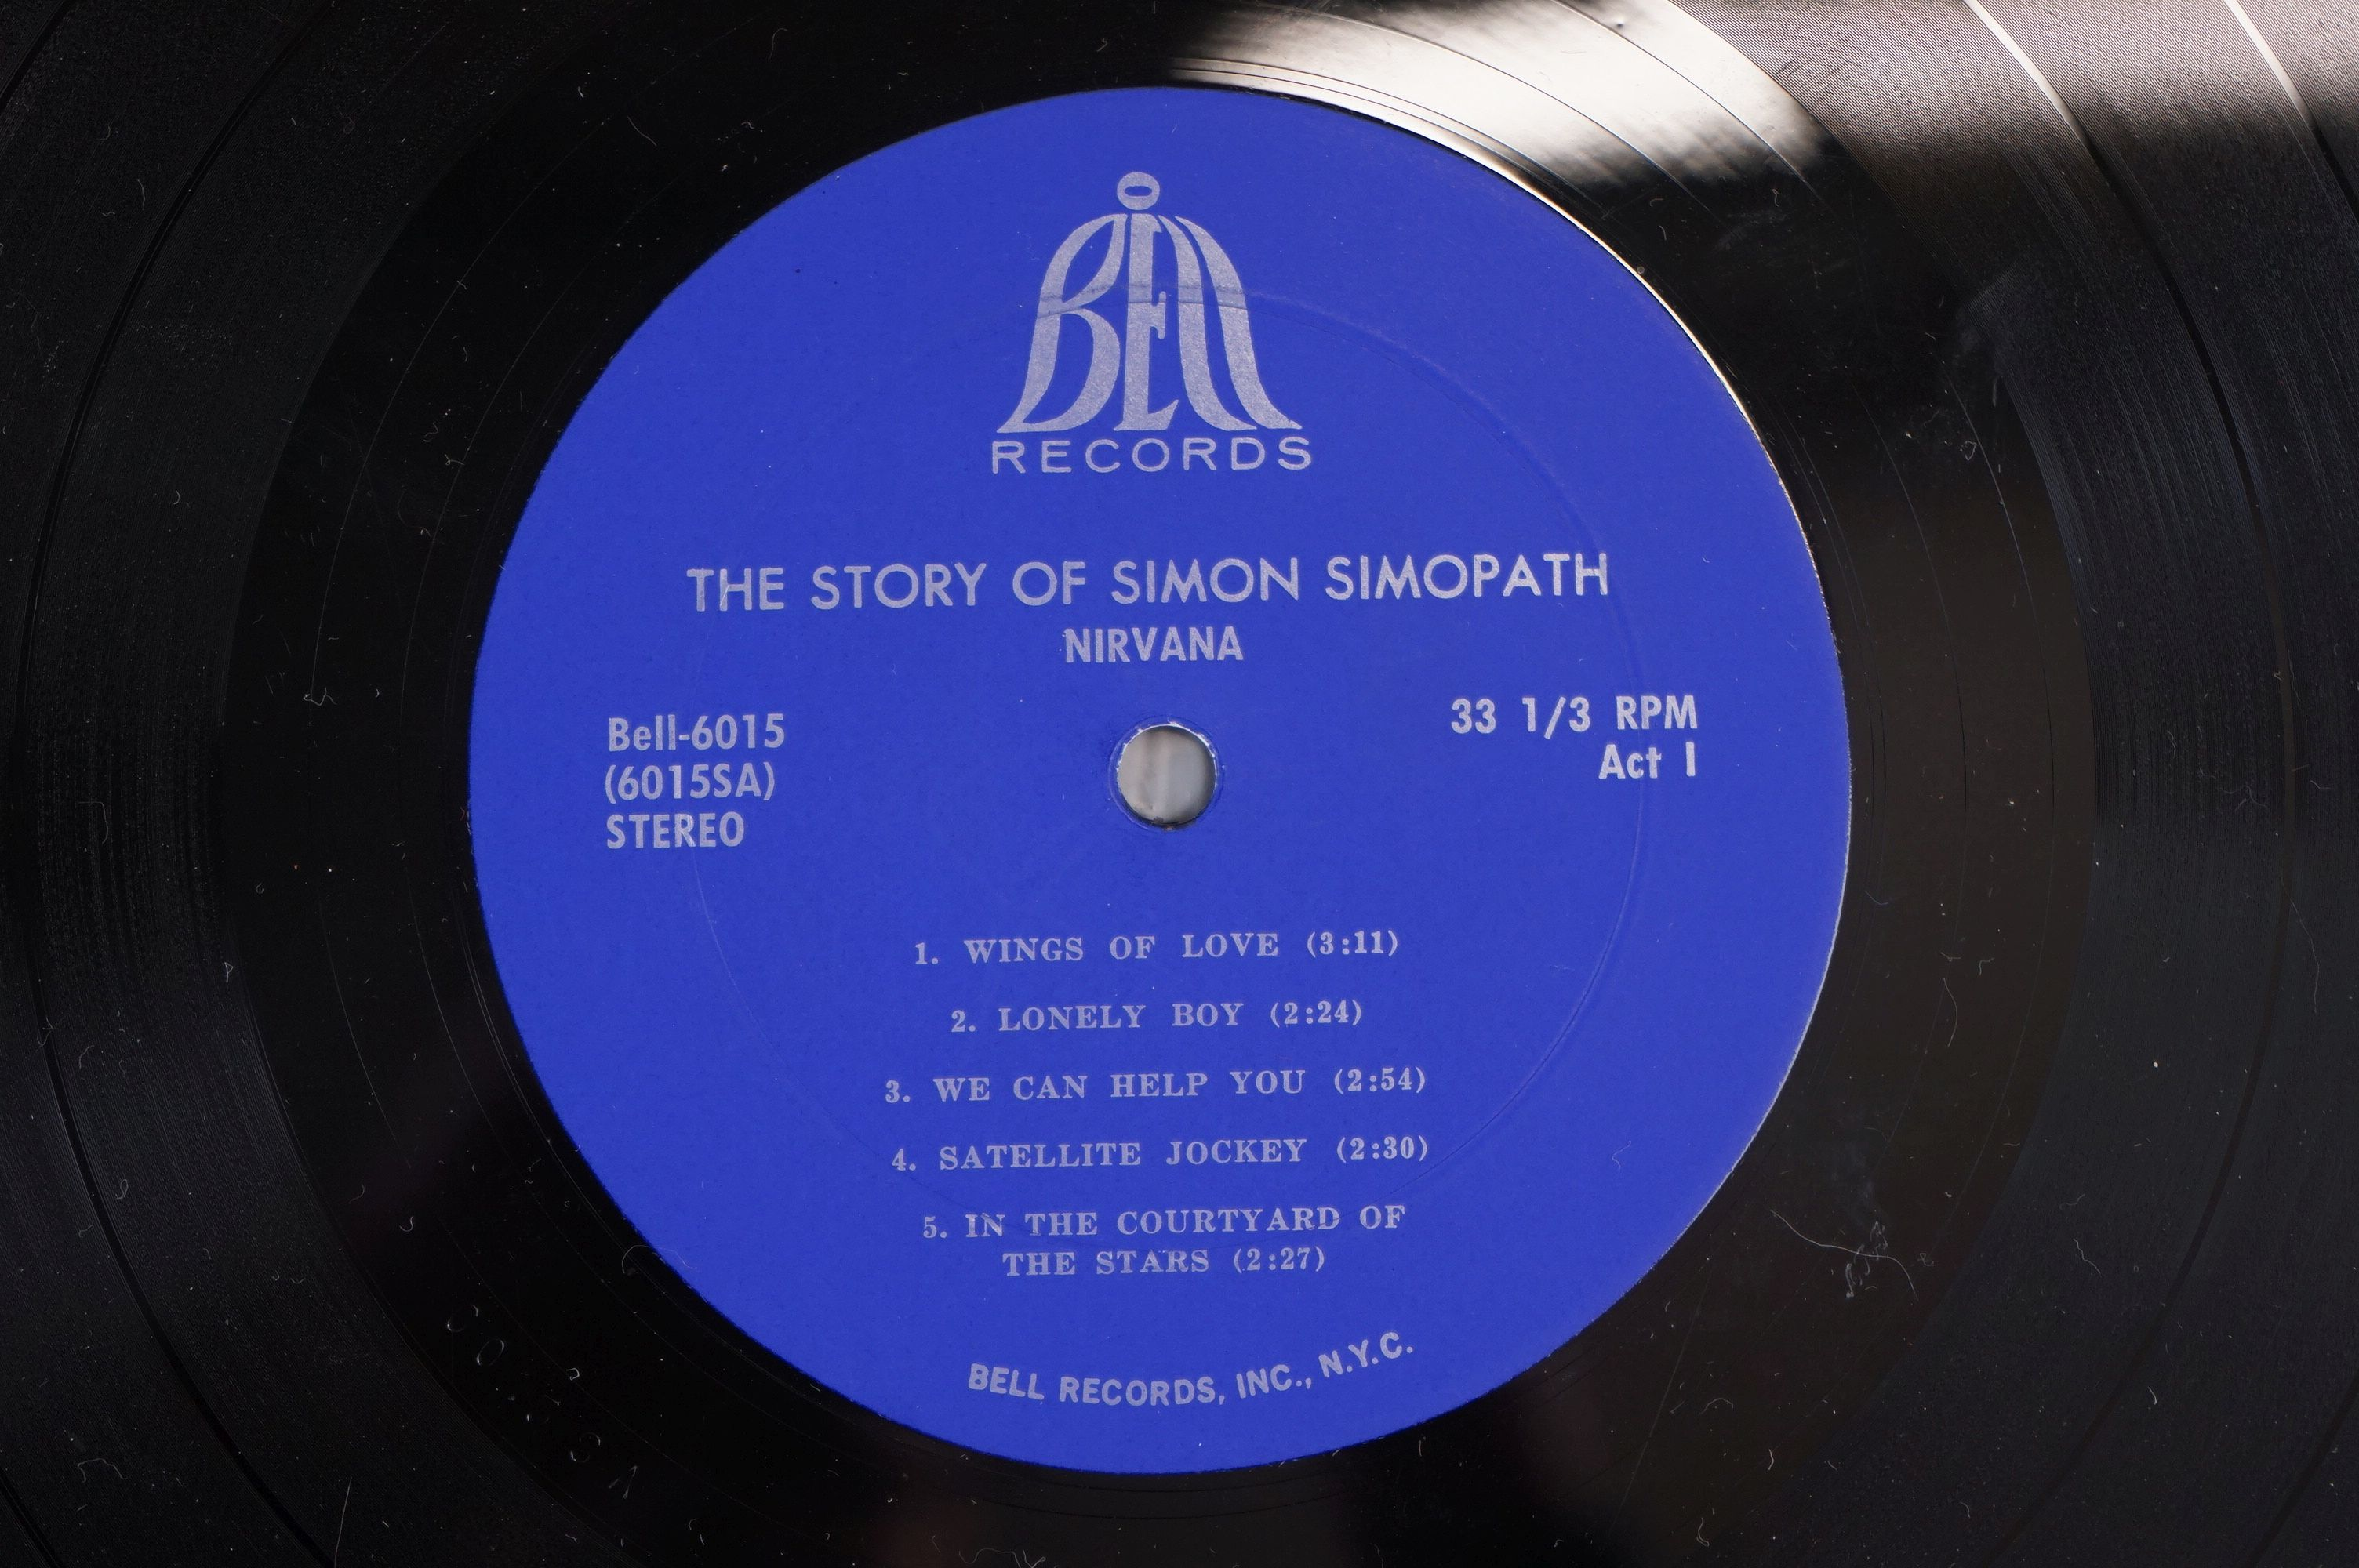 Vinyl - Two Nirvana LPs to include The Story of Simon Simopath LP on Bell Records 6015-S Stereo, - Image 4 of 13